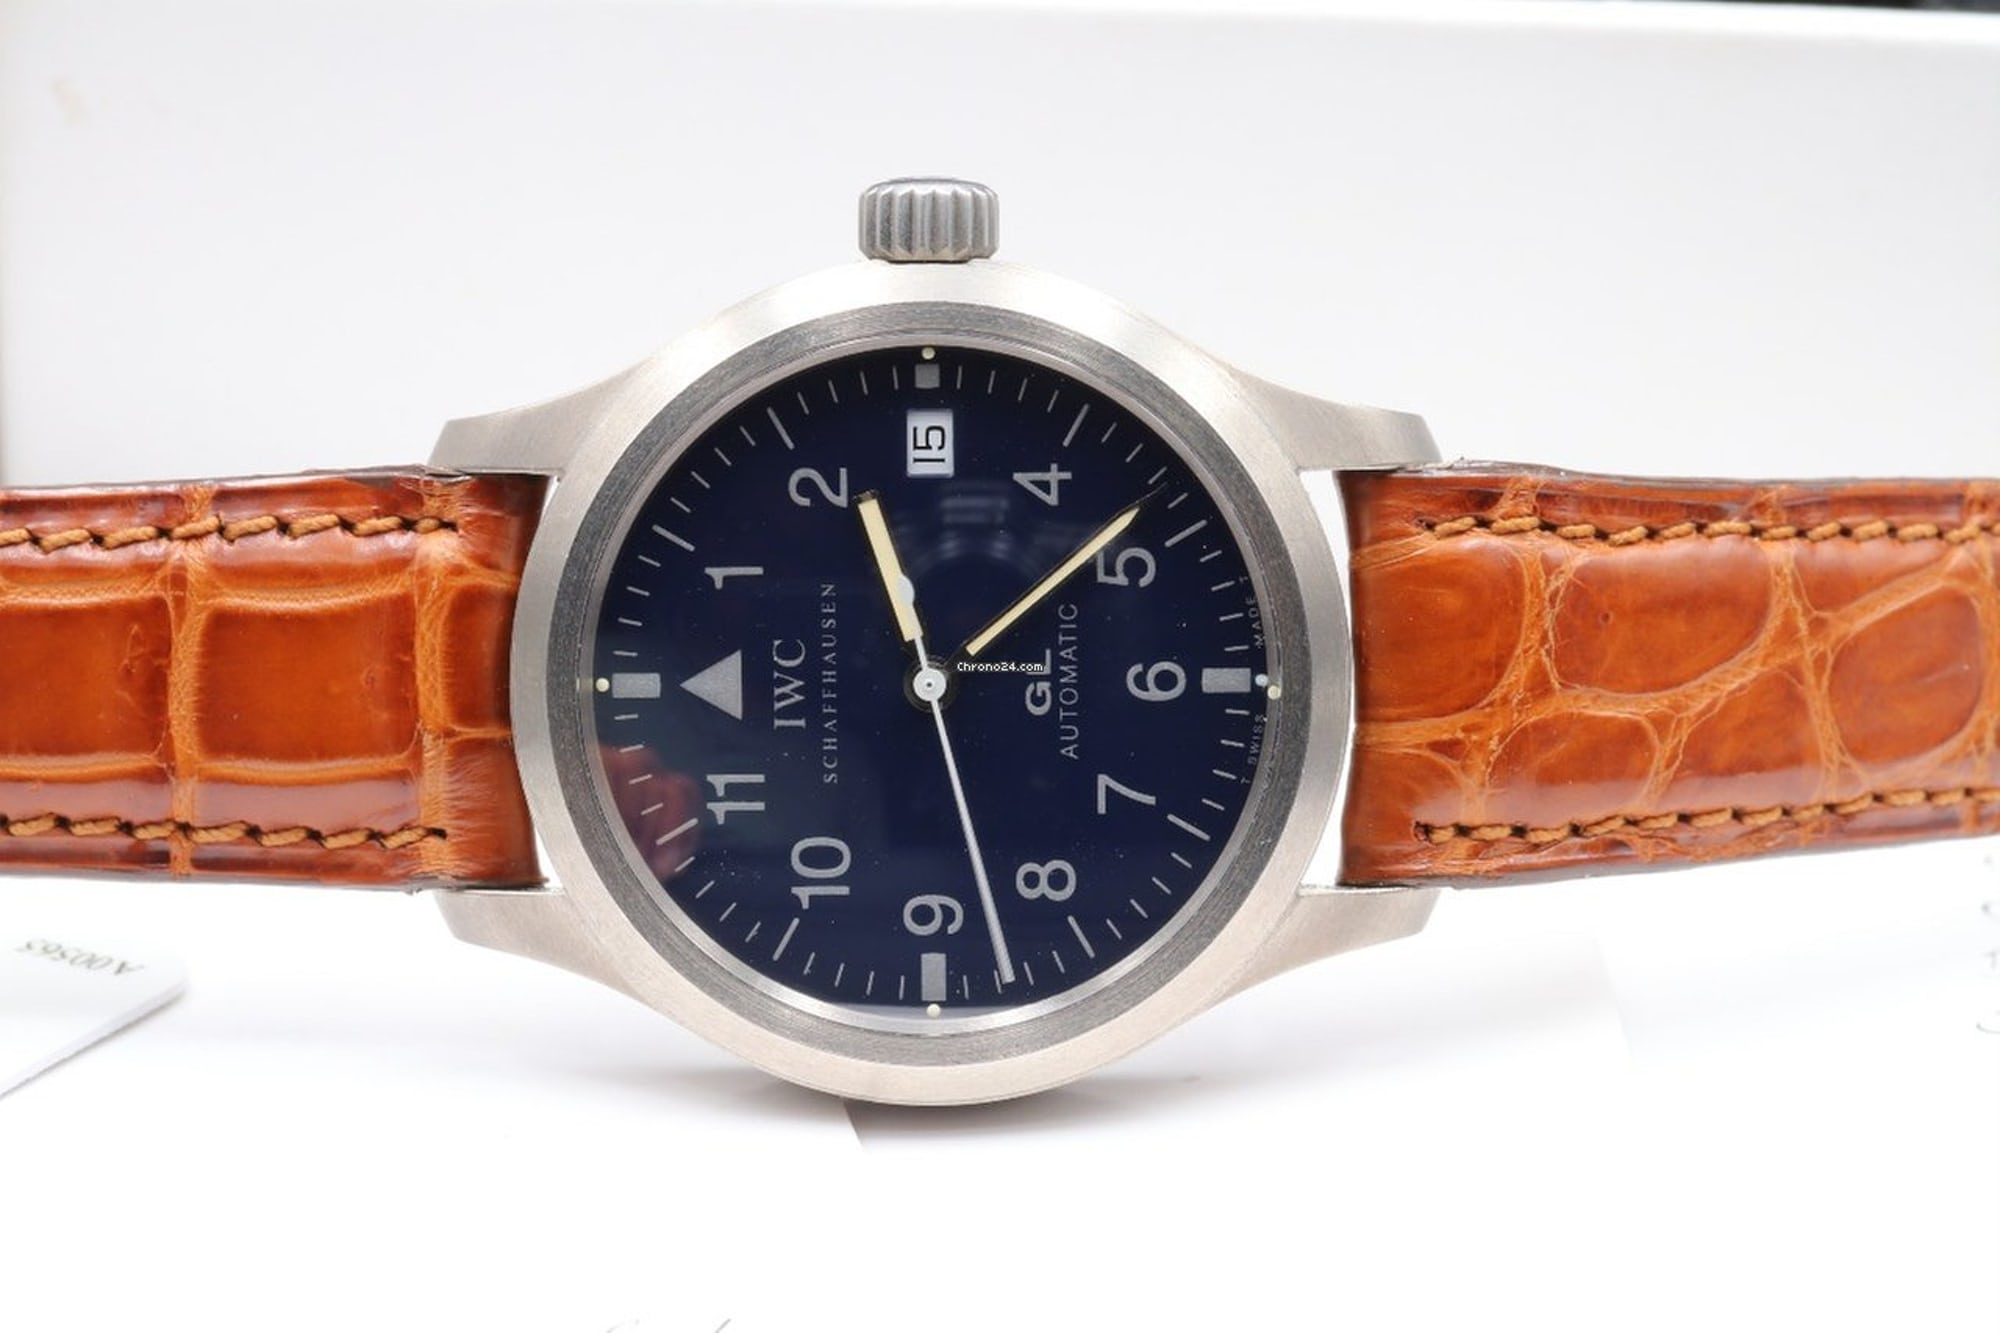 IWC Mark XII Reference 3242 Bring a Loupe: A Titanium Zenith Port Royal, A Military Universal Genve Compax, A Pulsations Doxa Sfygmos, And More Bring a Loupe: A Titanium Zenith Port Royal, A Military Universal Genve Compax, A Pulsations Doxa Sfygmos, And More IWC front